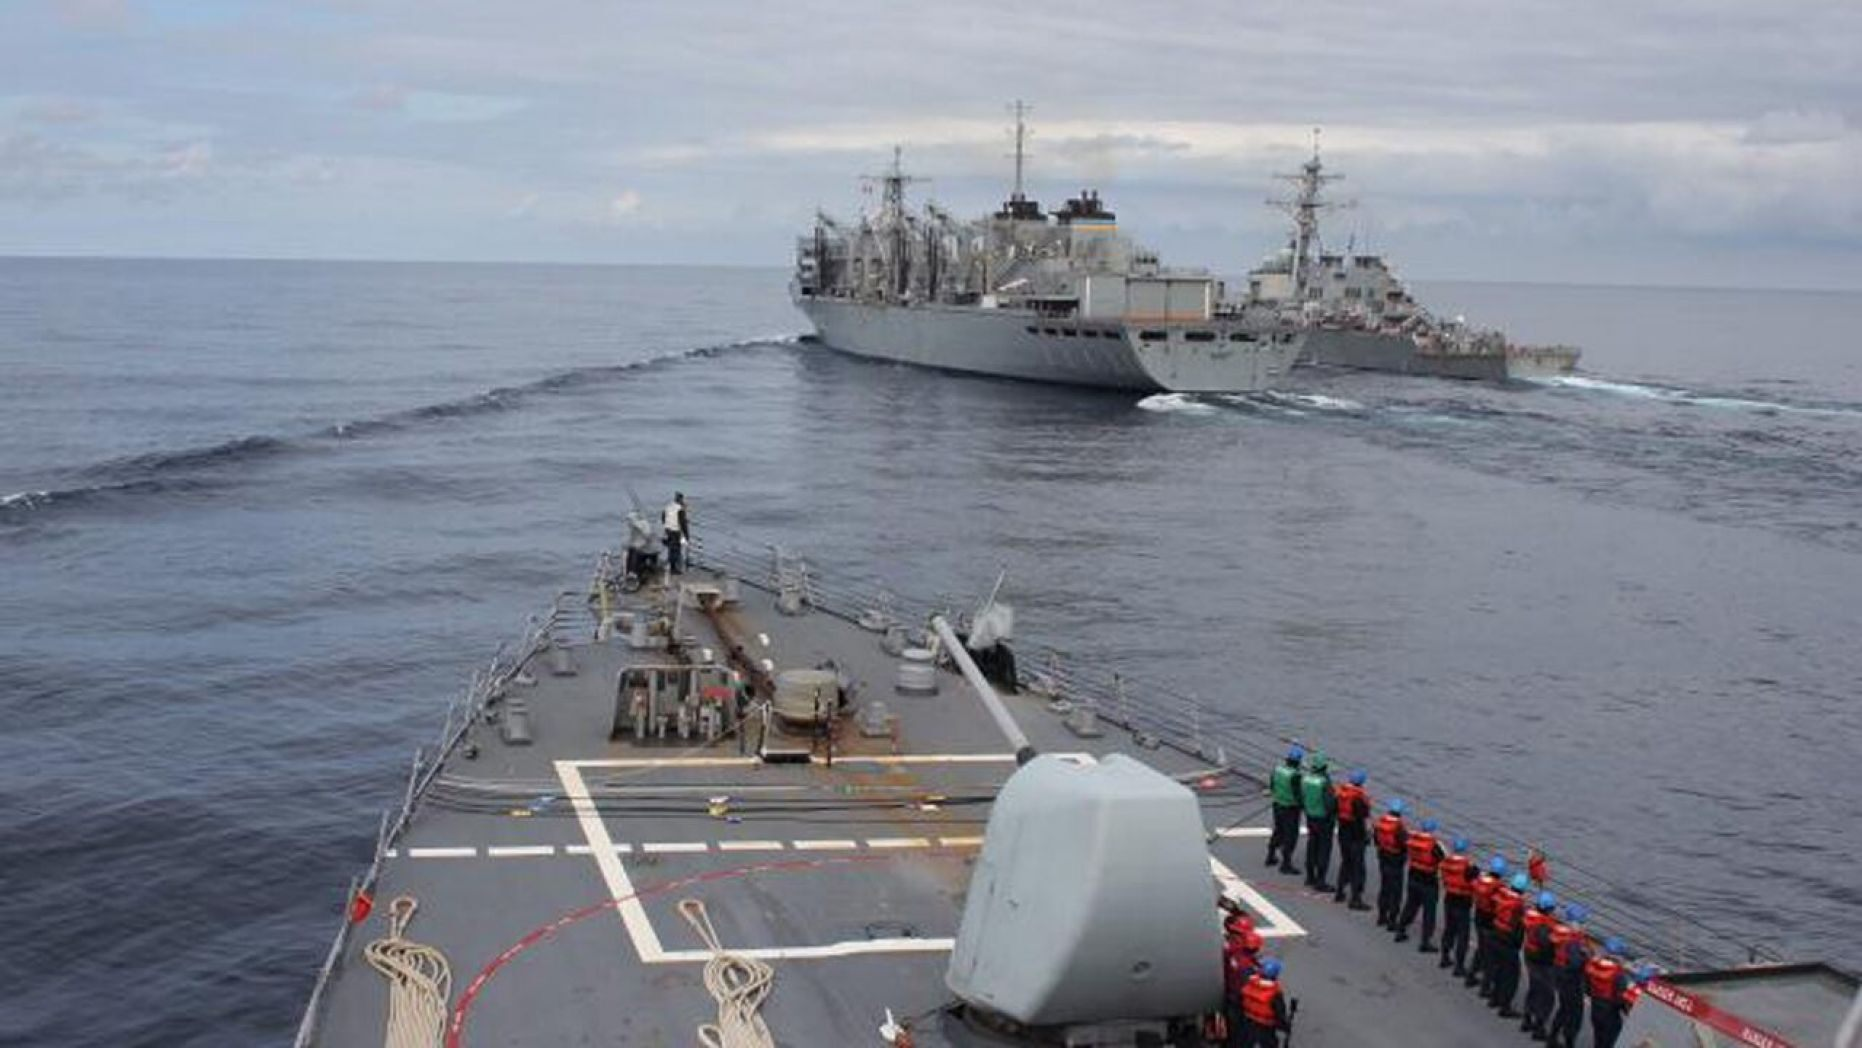 The Arleigh Burke-class guided-missile destroyer USS Donald Cook makes her approach alongside USNS SUPPLY and USS Porter for a connected replenishment to receive fuel and stores on April 28.